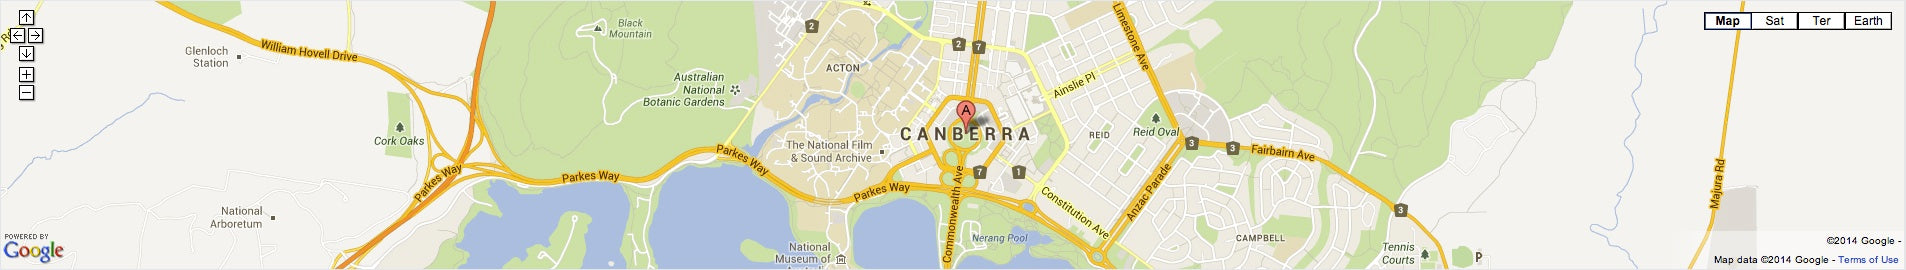 Canberra information security